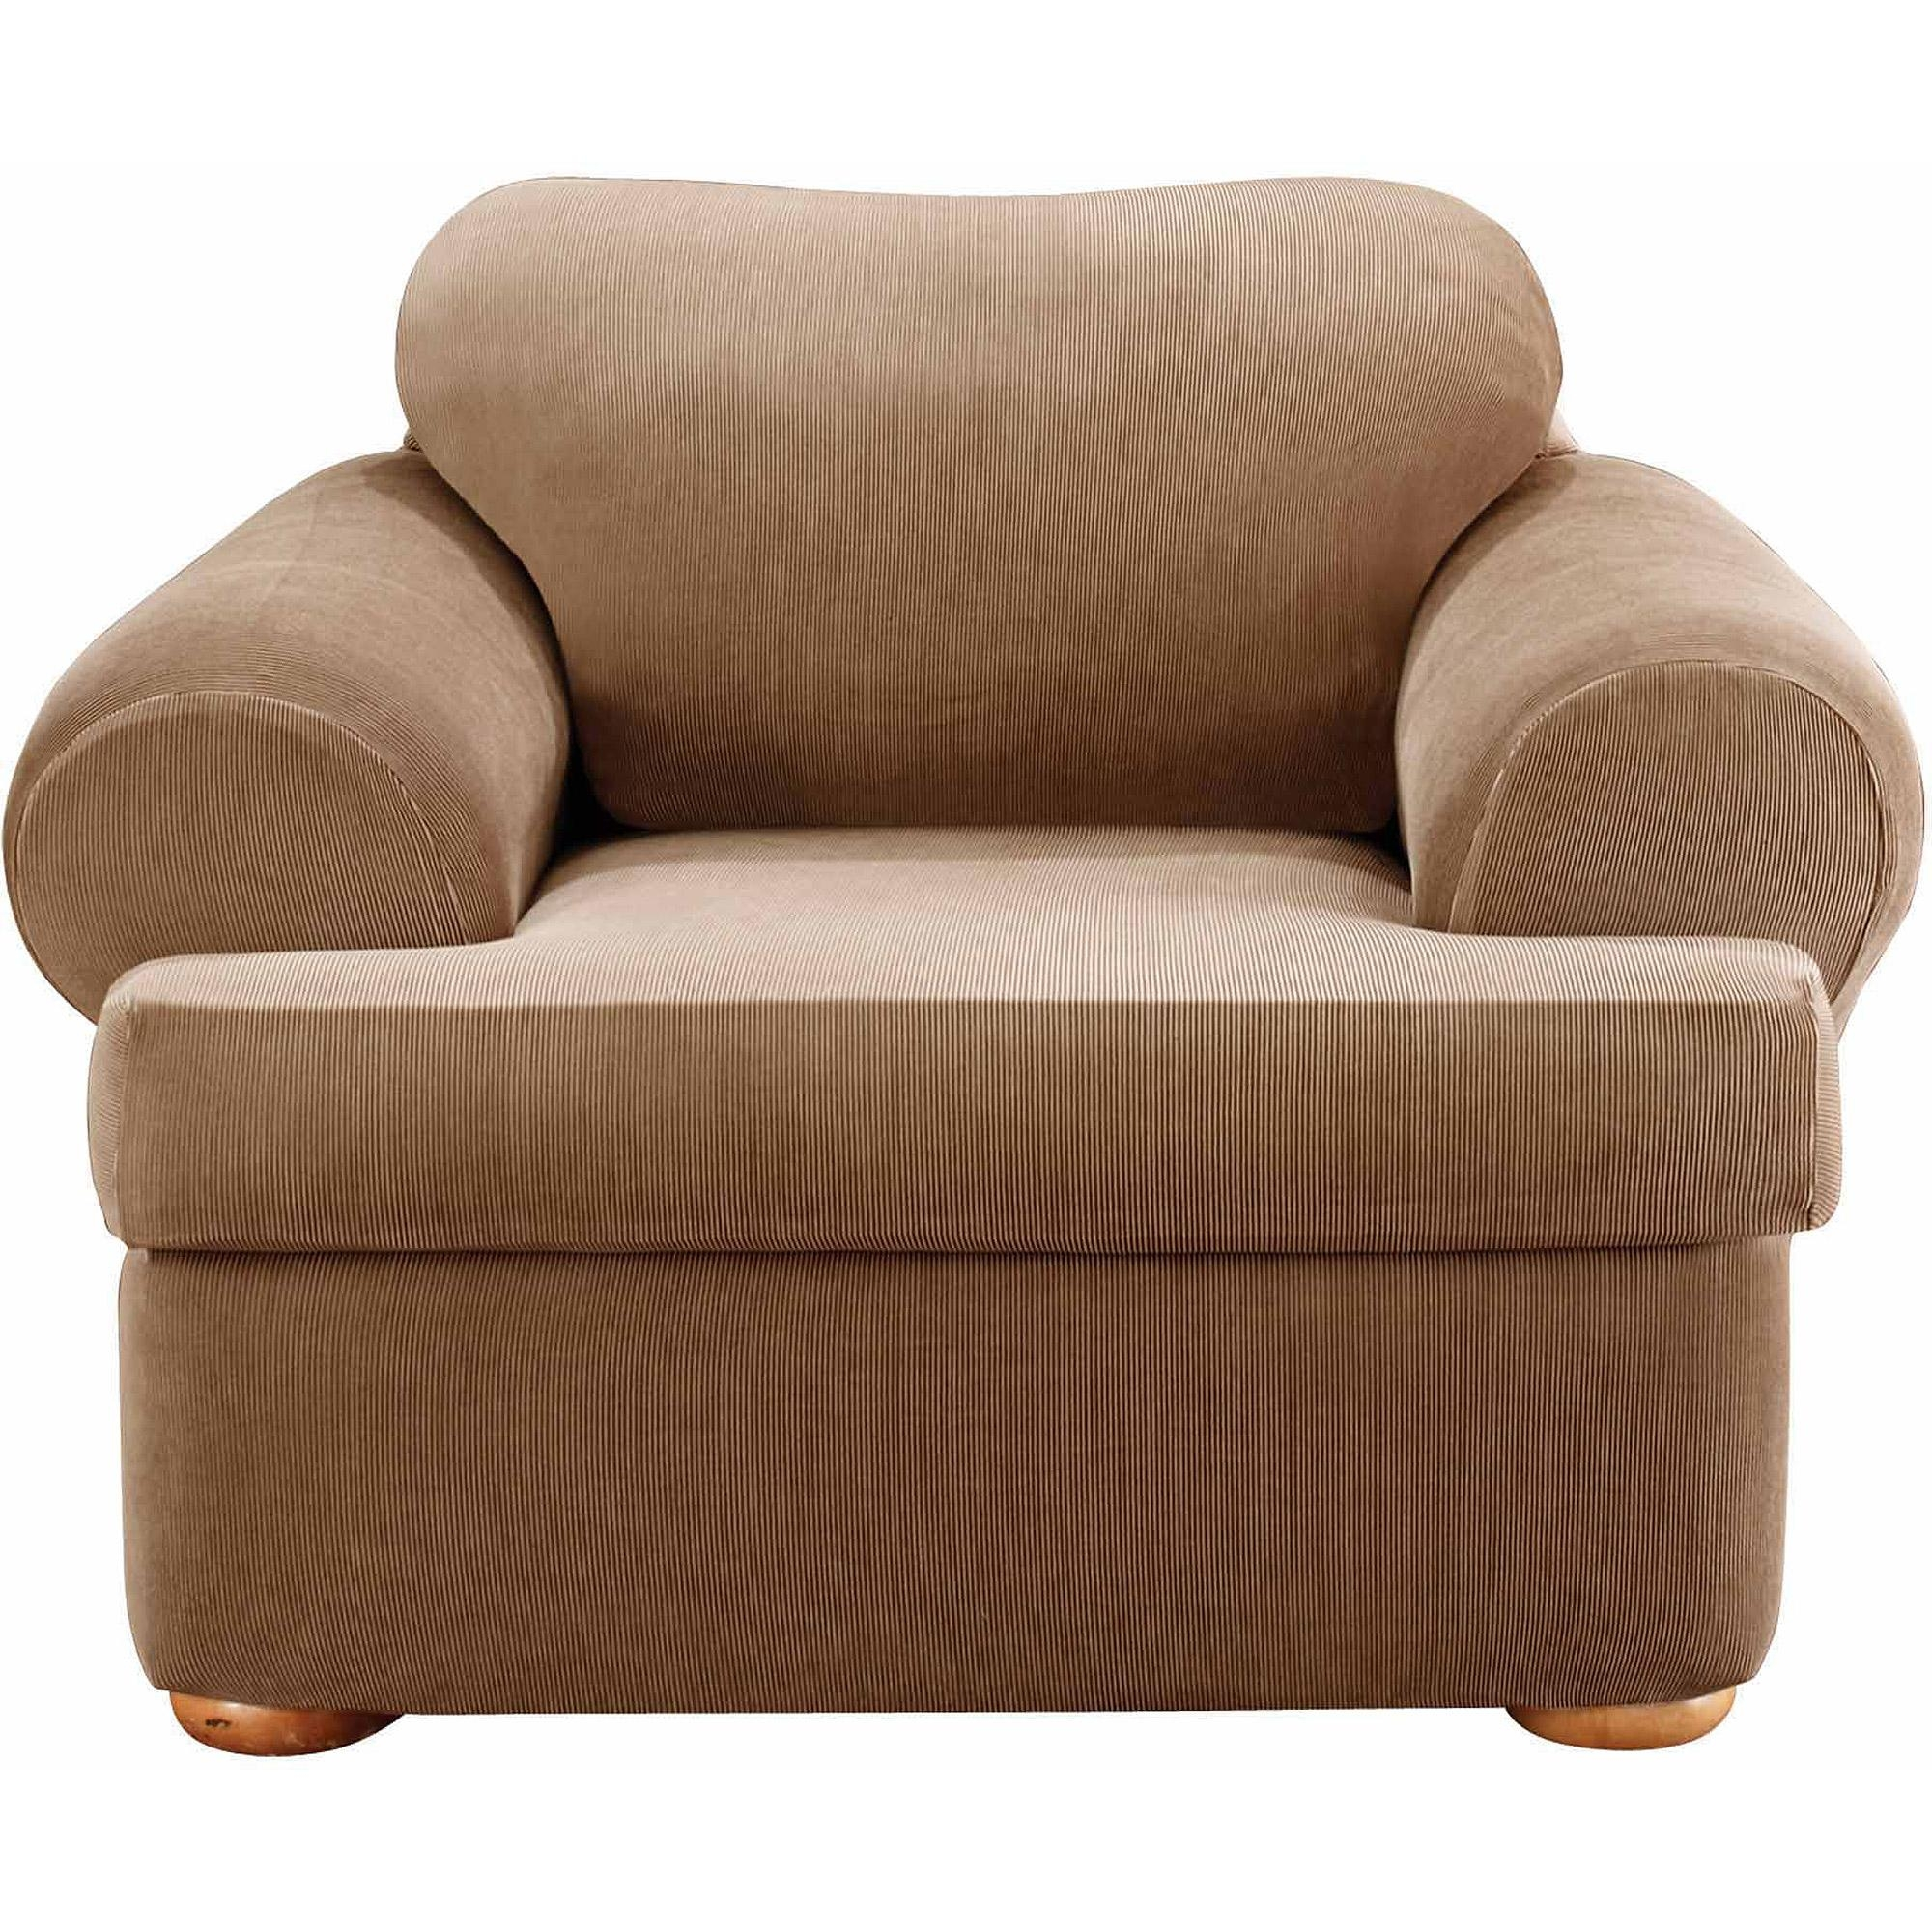 Decor: Stylish T Cushion Sofa Slipcover For Living Room Decoration Inside Loveseat Slipcovers T Cushion (View 5 of 20)